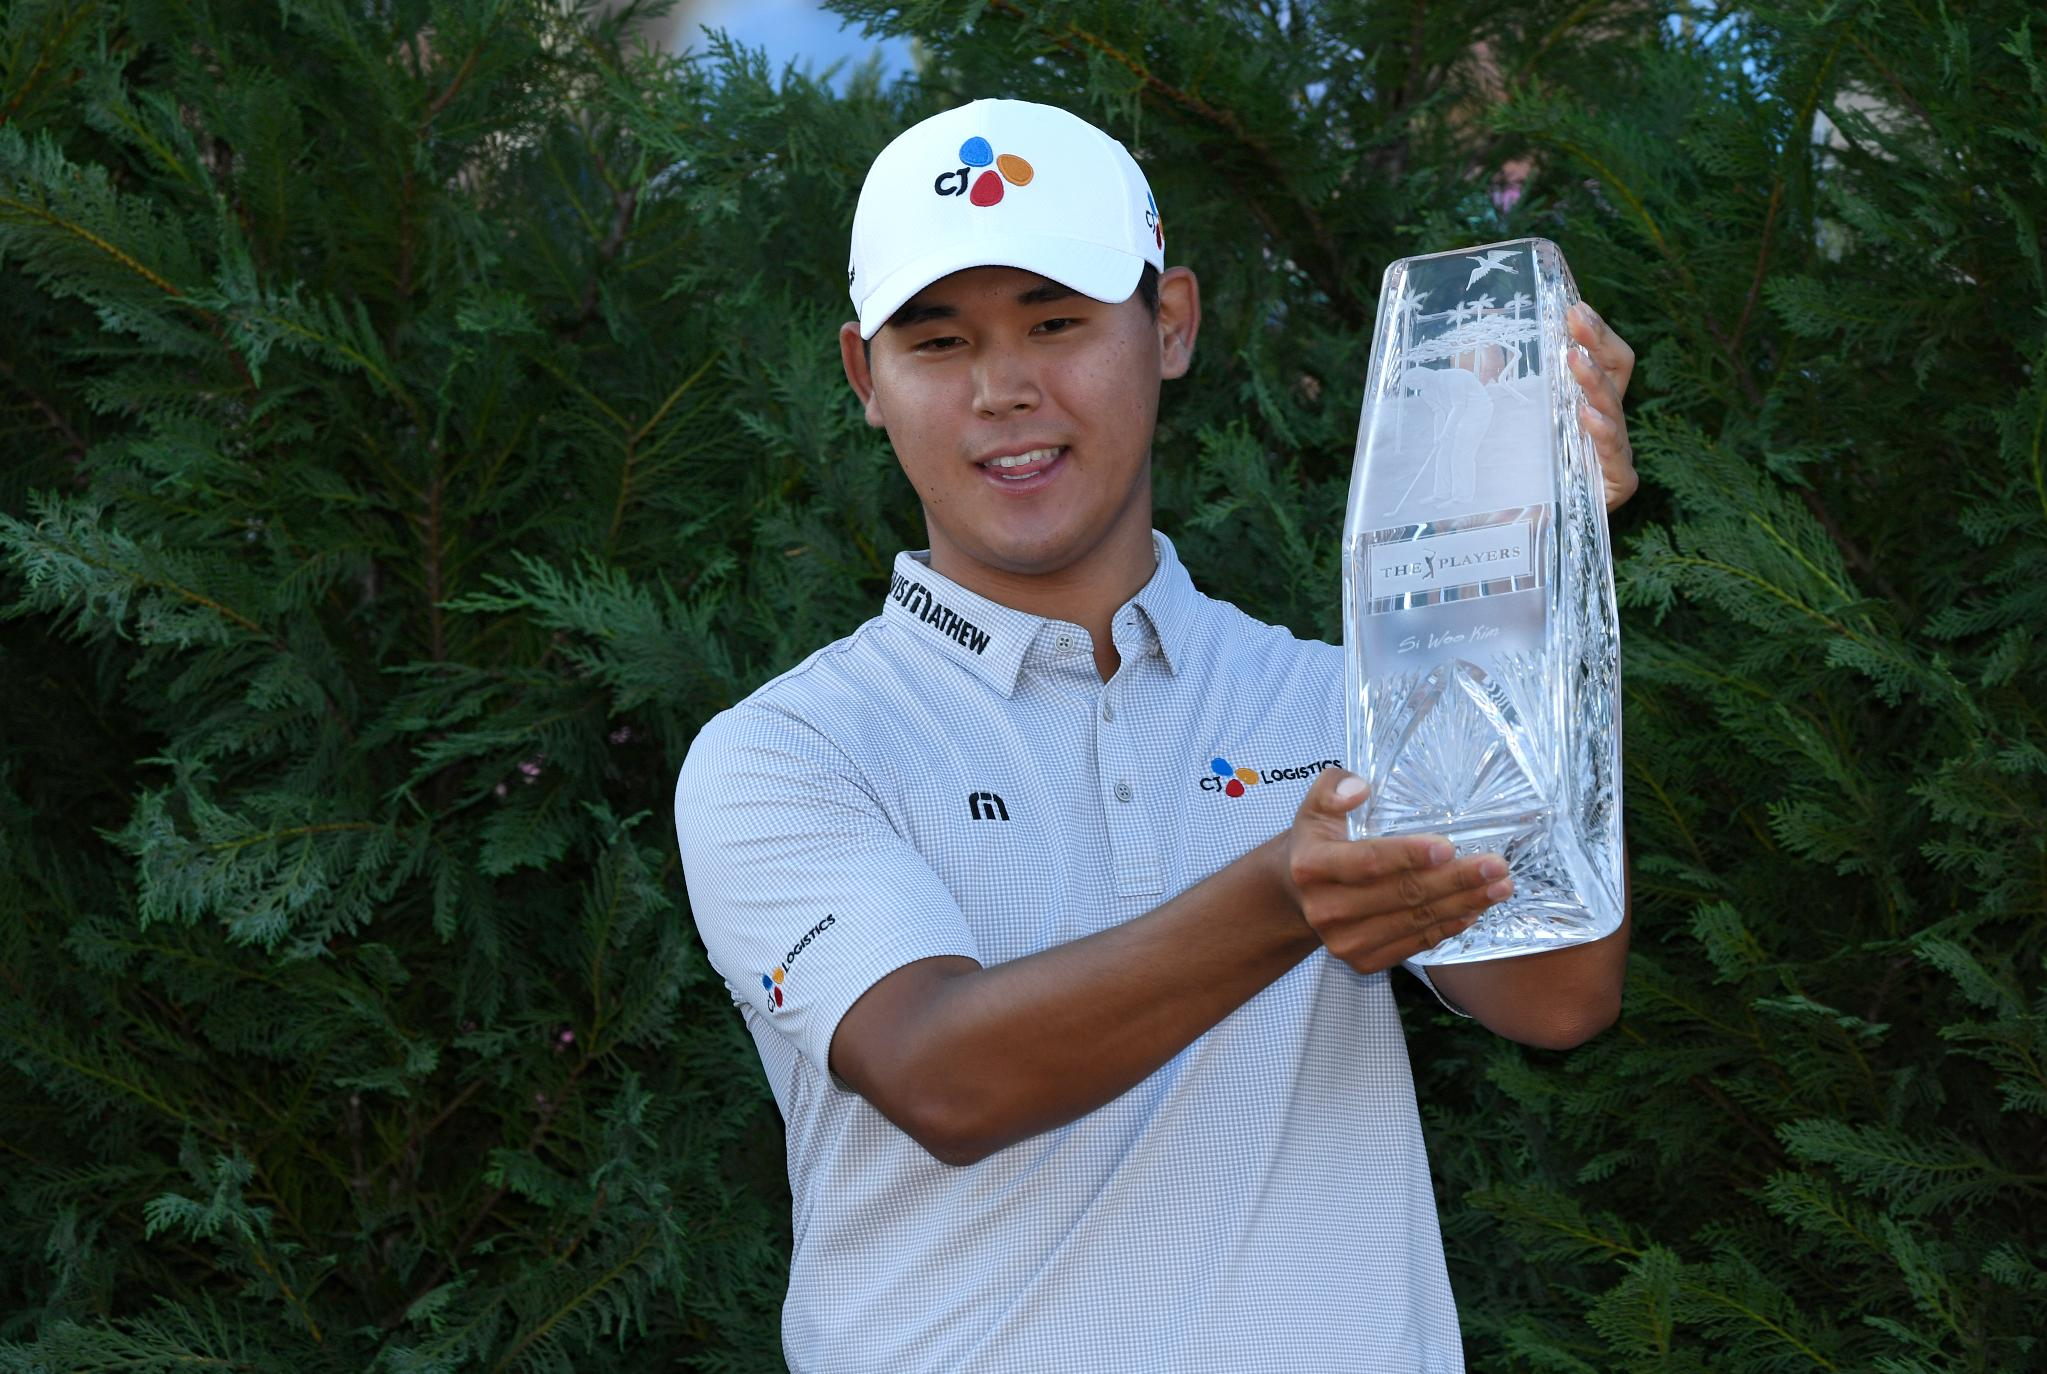 21-year-old Si Woo Kim is the youngest player to ever win THE PLAYERS Championship. https://t.co/TJbIB7qaWT